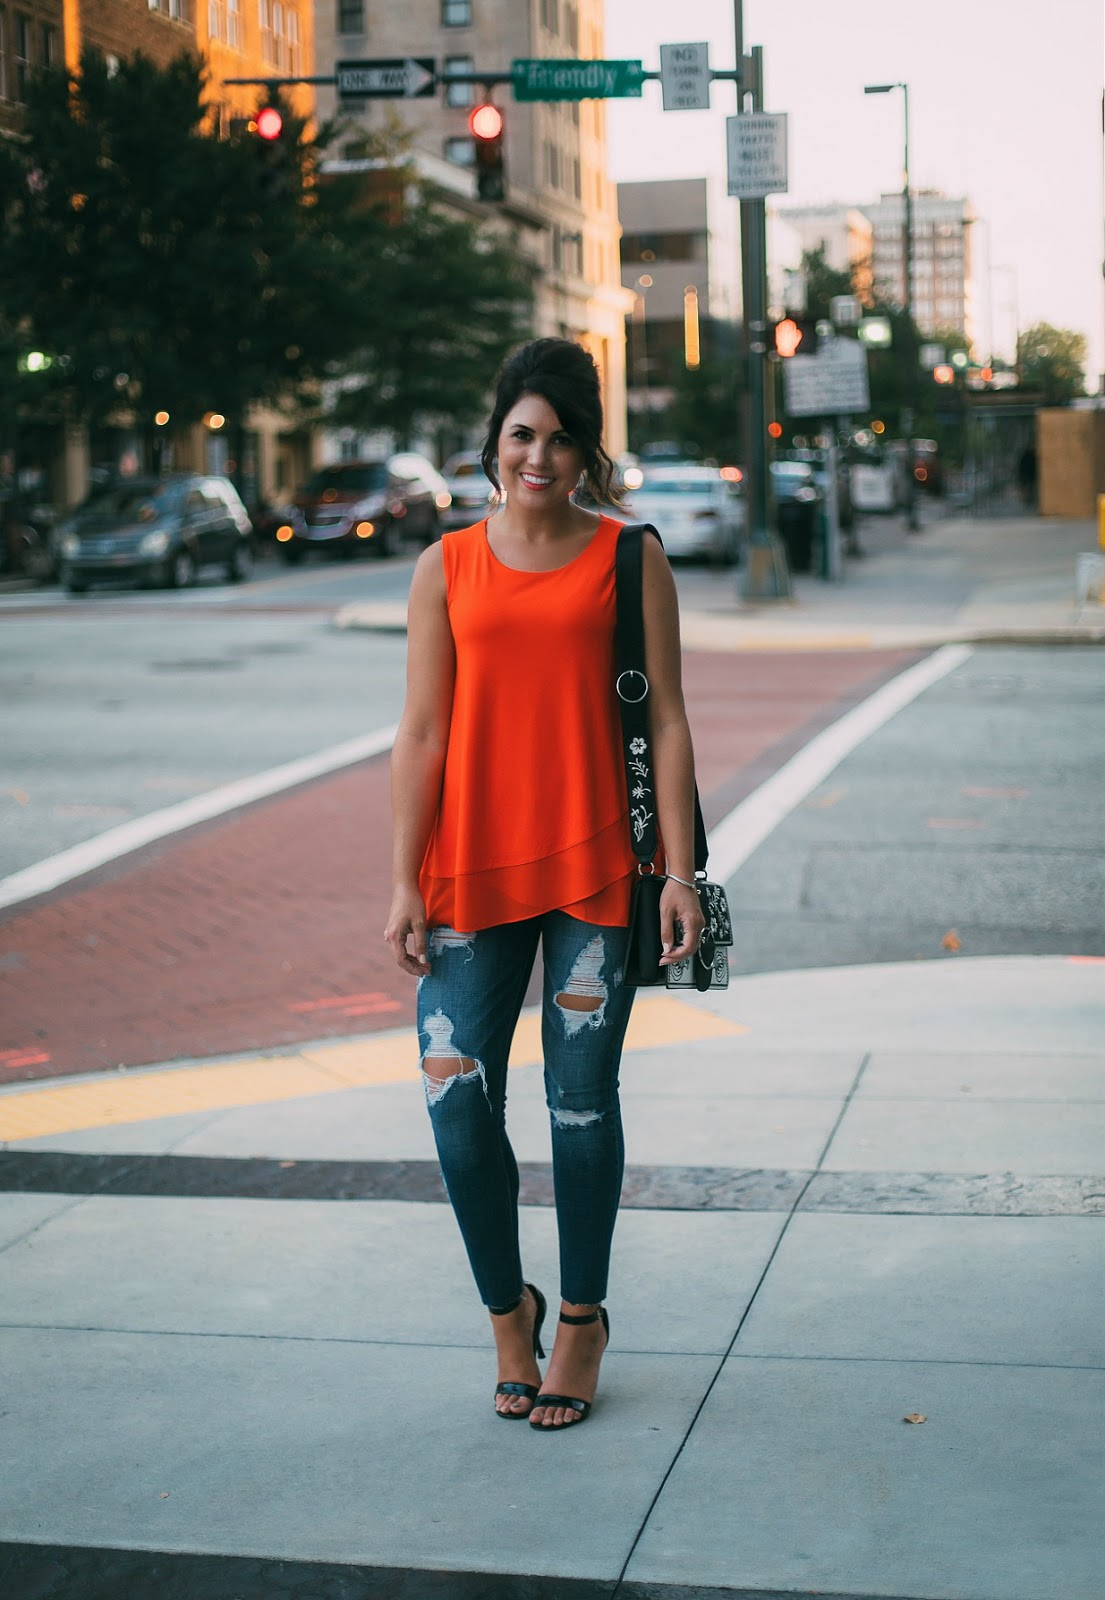 chiffon tank, prada cahier dupe, distressed express denim, sam edelman patti sandals, red orange shirt outfit, casual chic, life and messy hair, xo samantha brooke, samantha brooke